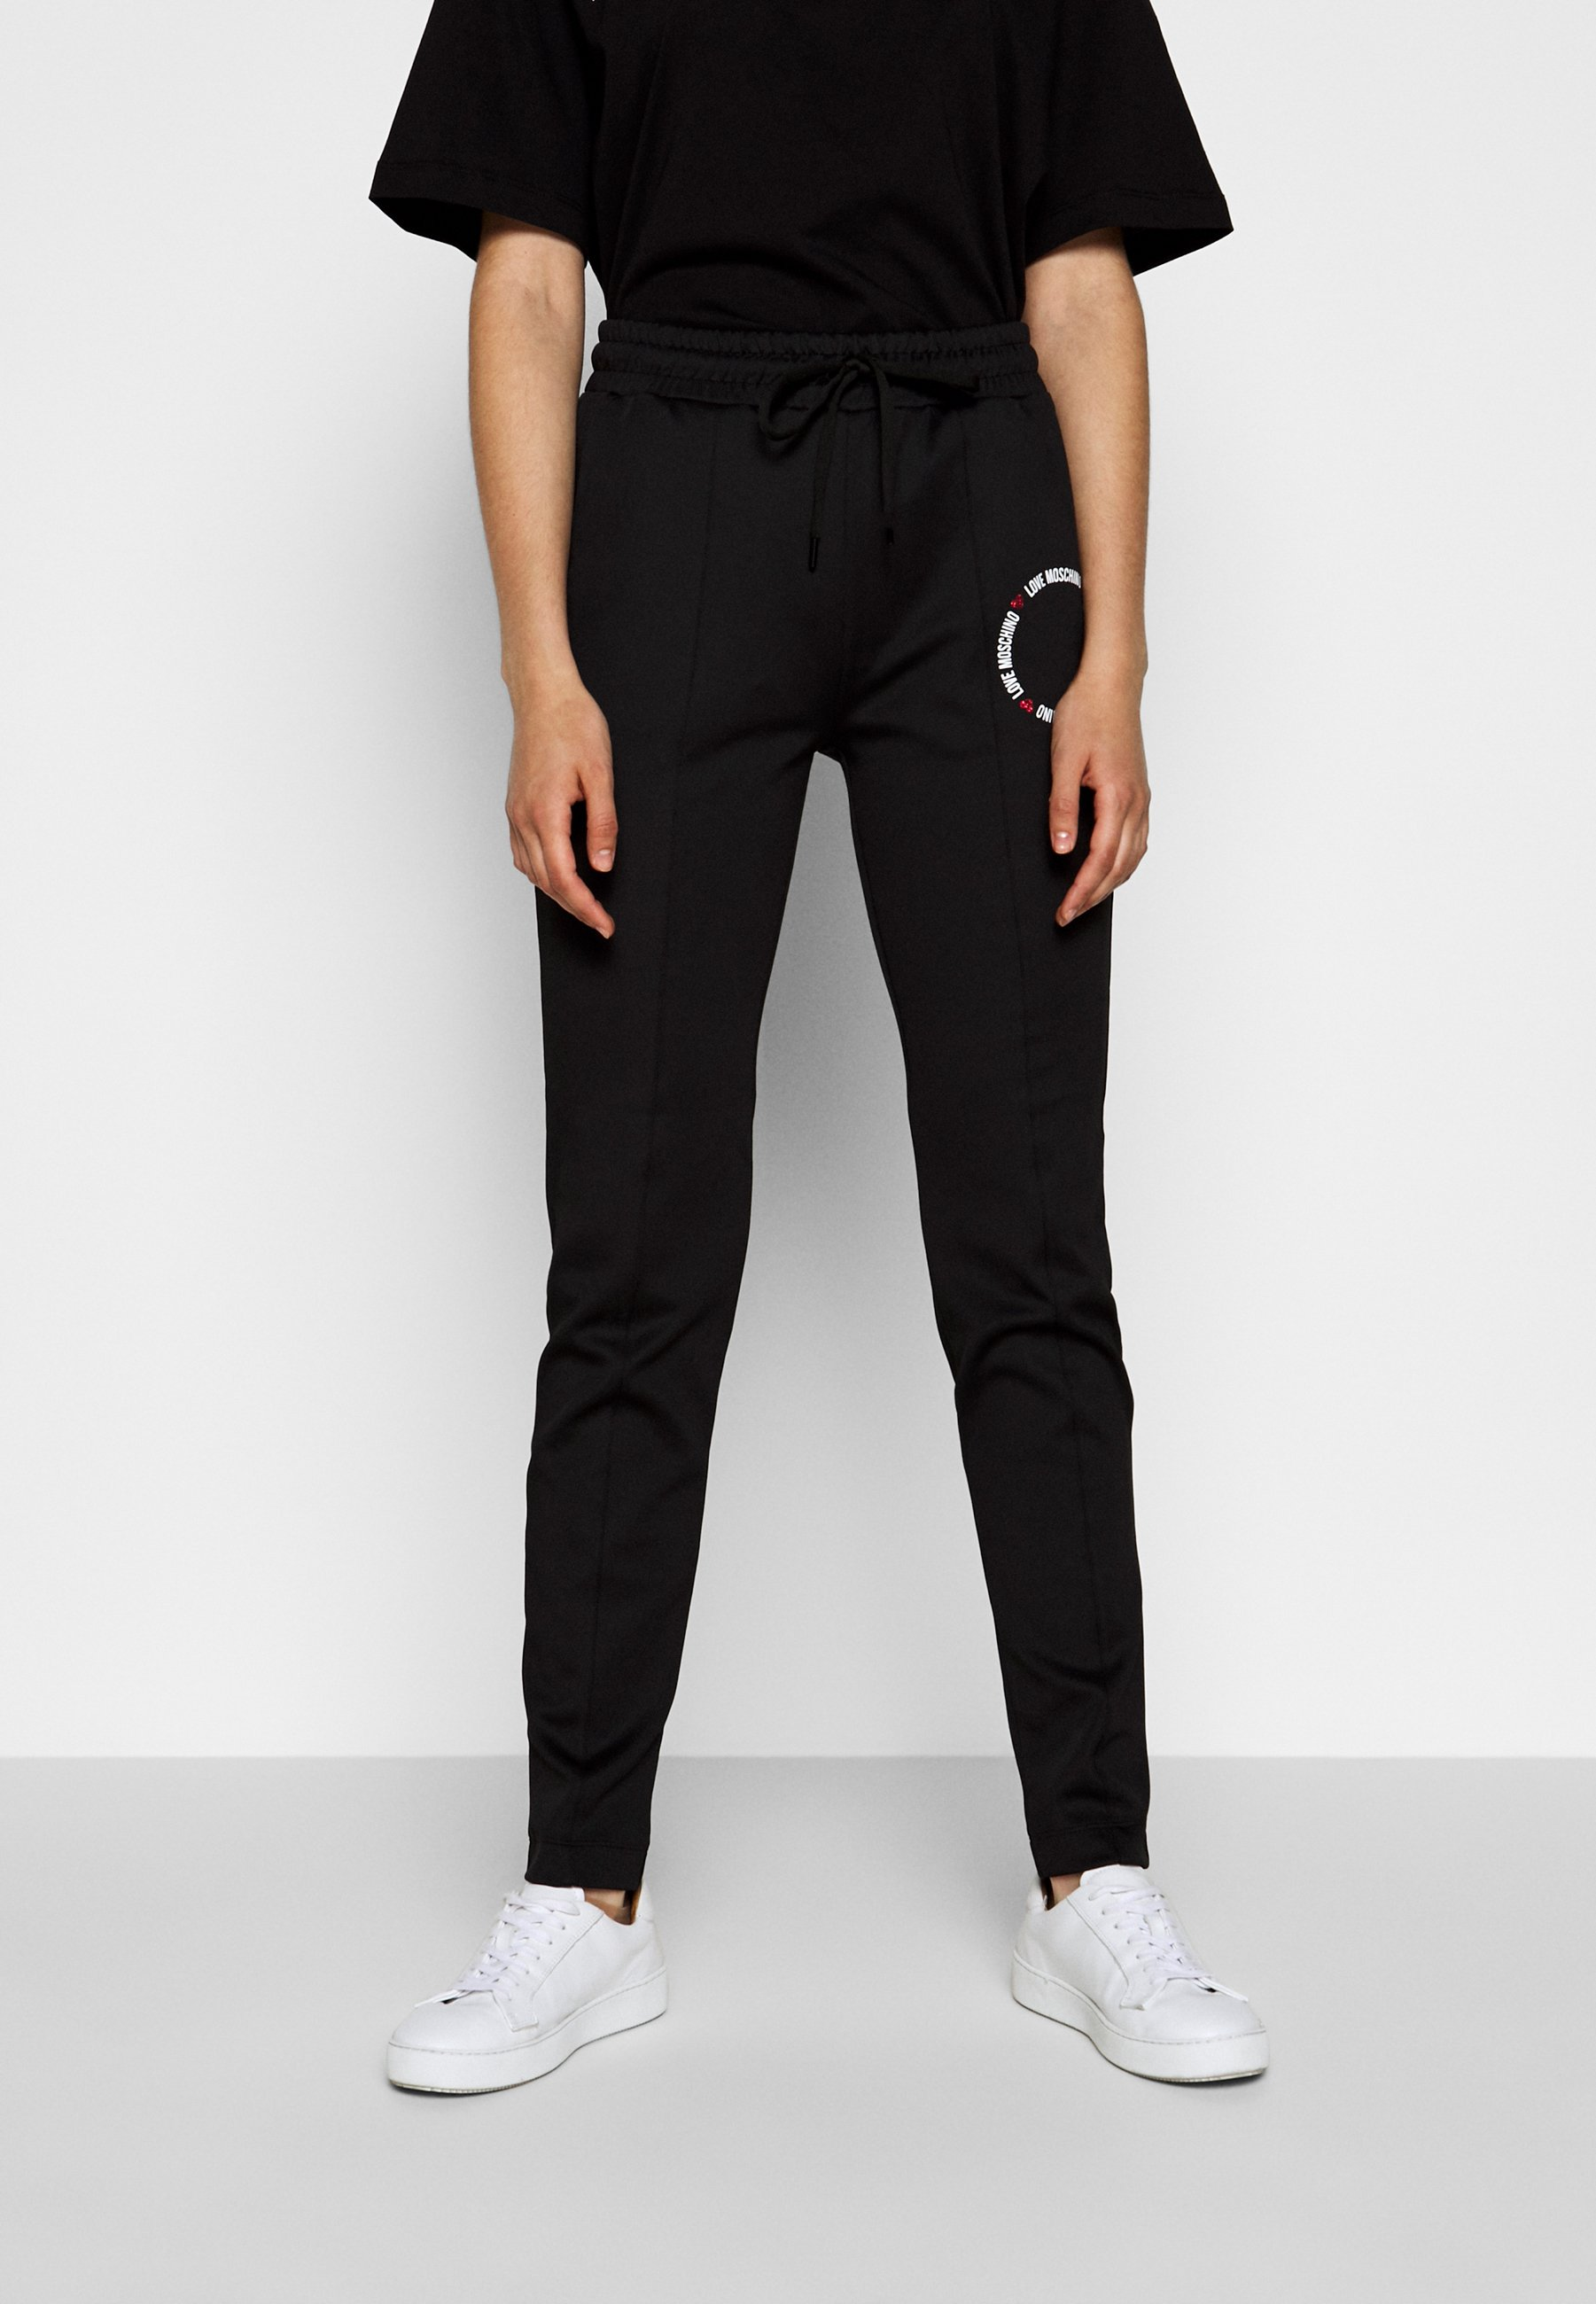 Clearance Women's Clothing Love Moschino Tracksuit bottoms black ThjT7ebD6